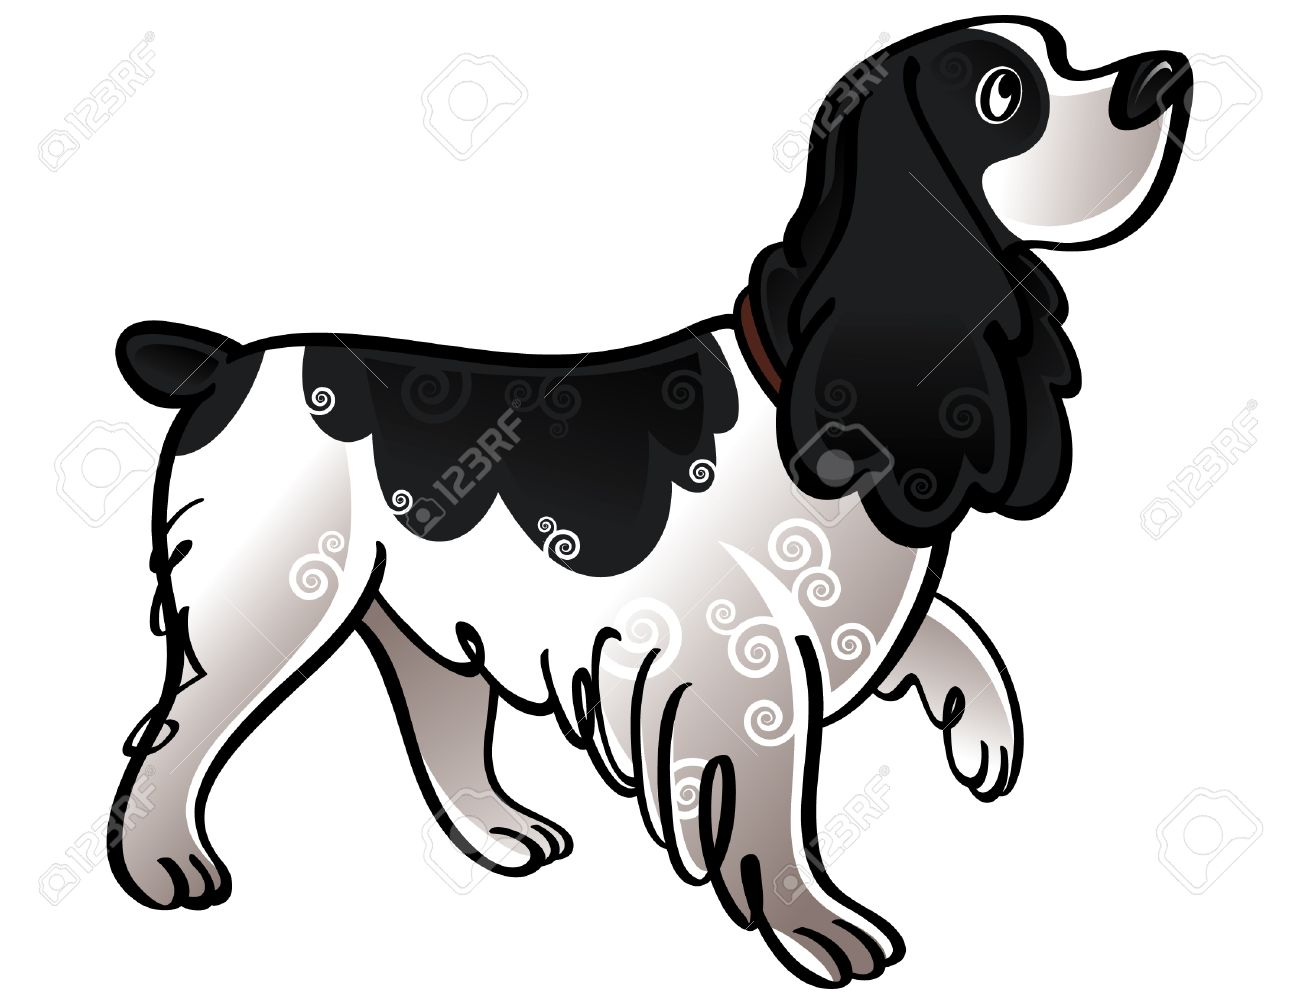 Colorful vector illustration of the dog Cocker Spaniel Stock Vector - 6488229